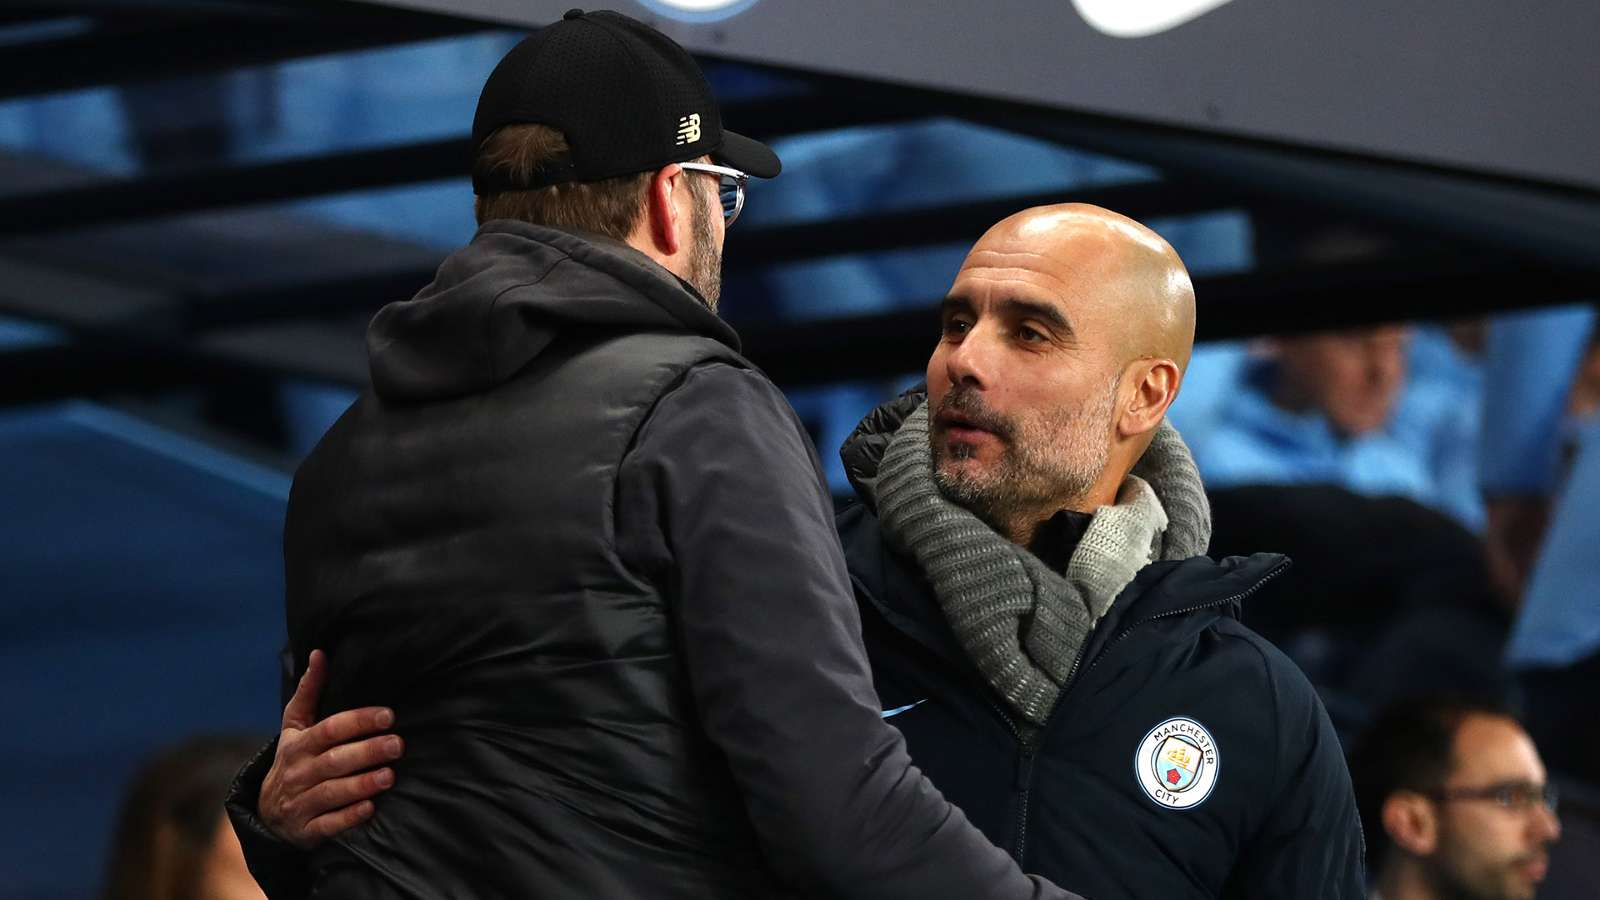 'I couldn't respect Guardiola more' - Klopp moving on from 'dive' spat - Bóng Đá